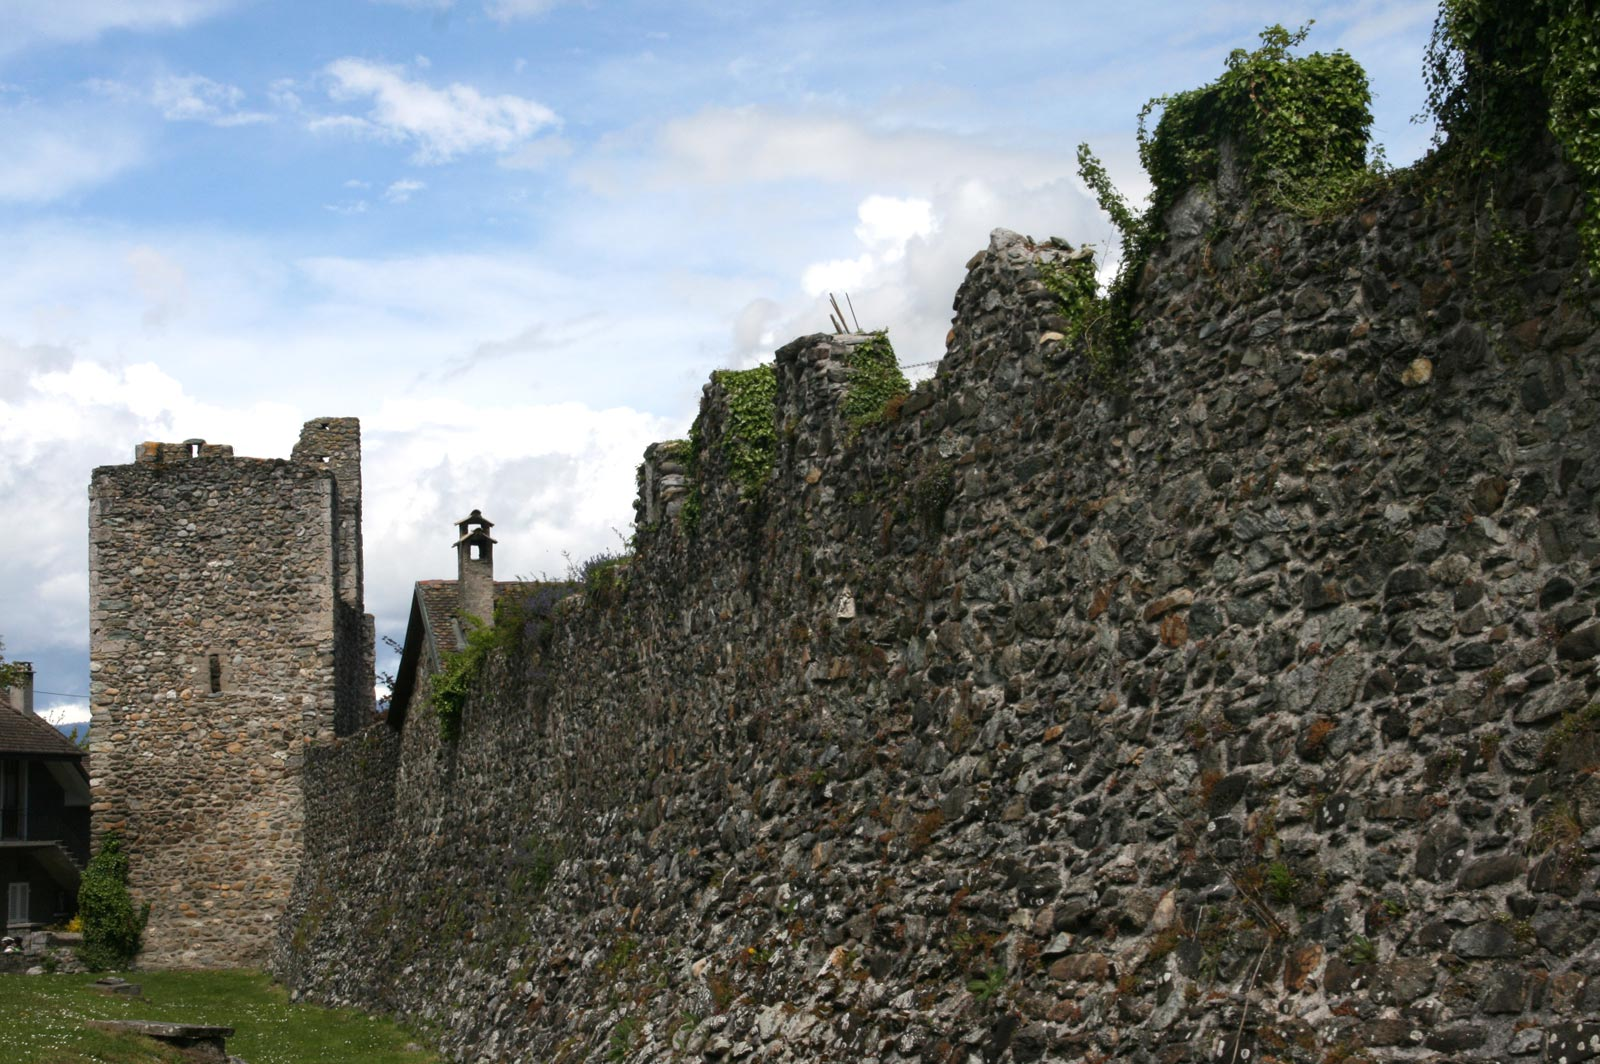 The ramparts of the medieval village of Yvoire